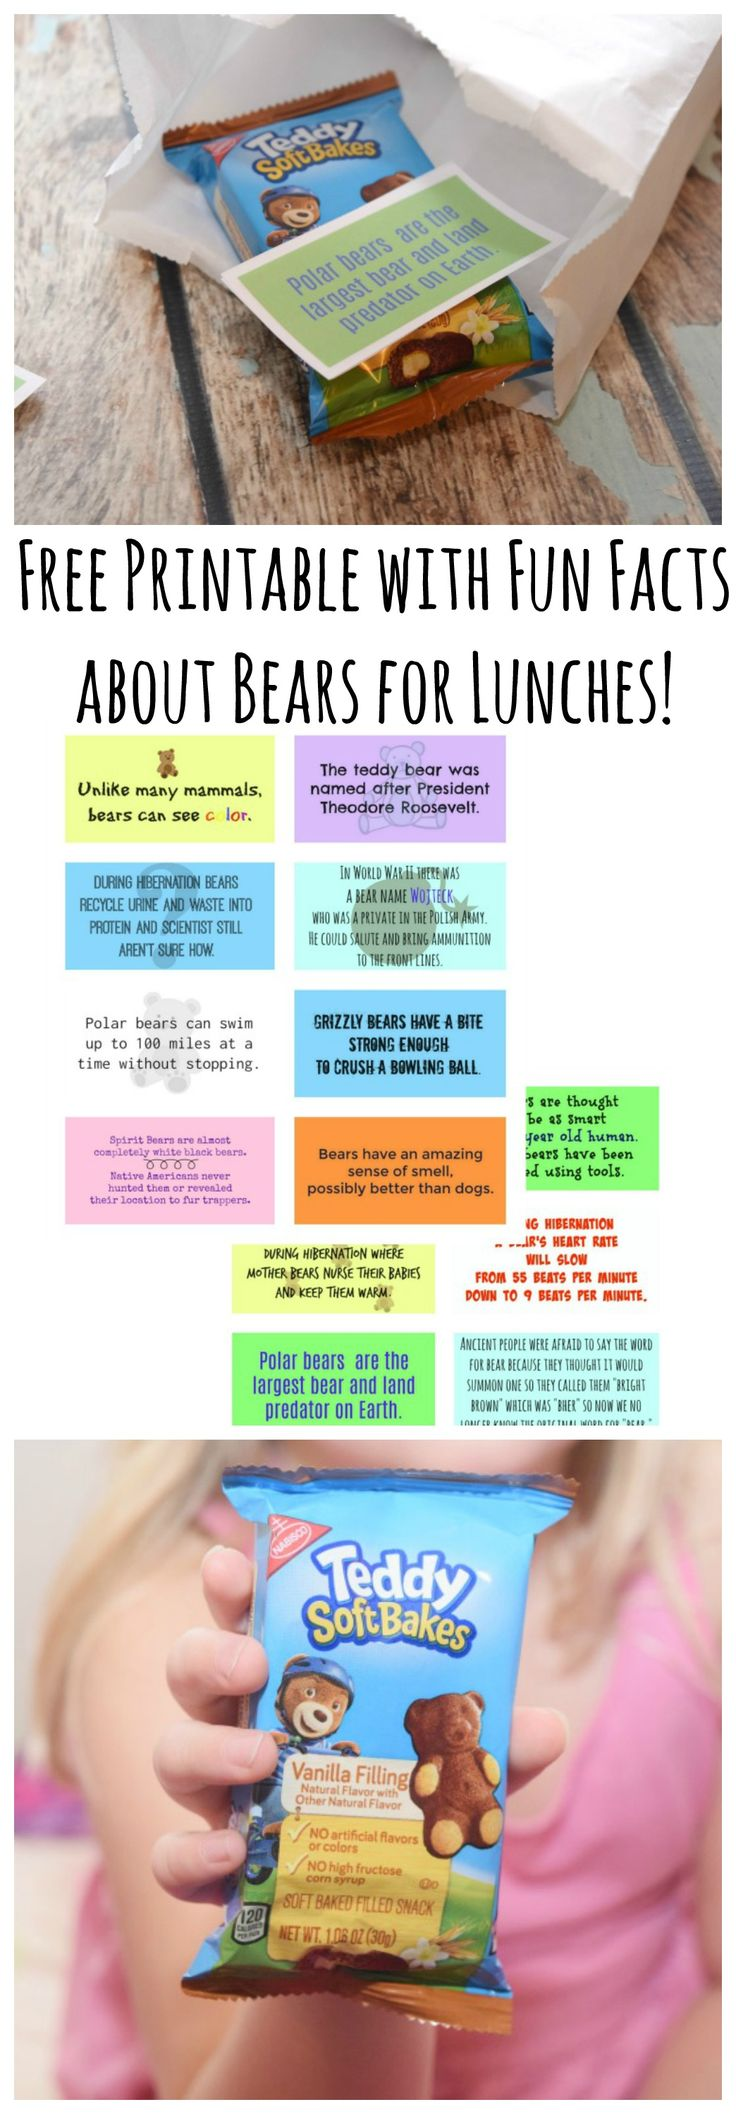 Grab these FREE printables full of fun facts about bears for kid lunch boxes! Perfect to go along with TEDDY Soft Bakes! #DiscoverTEDDY #ad